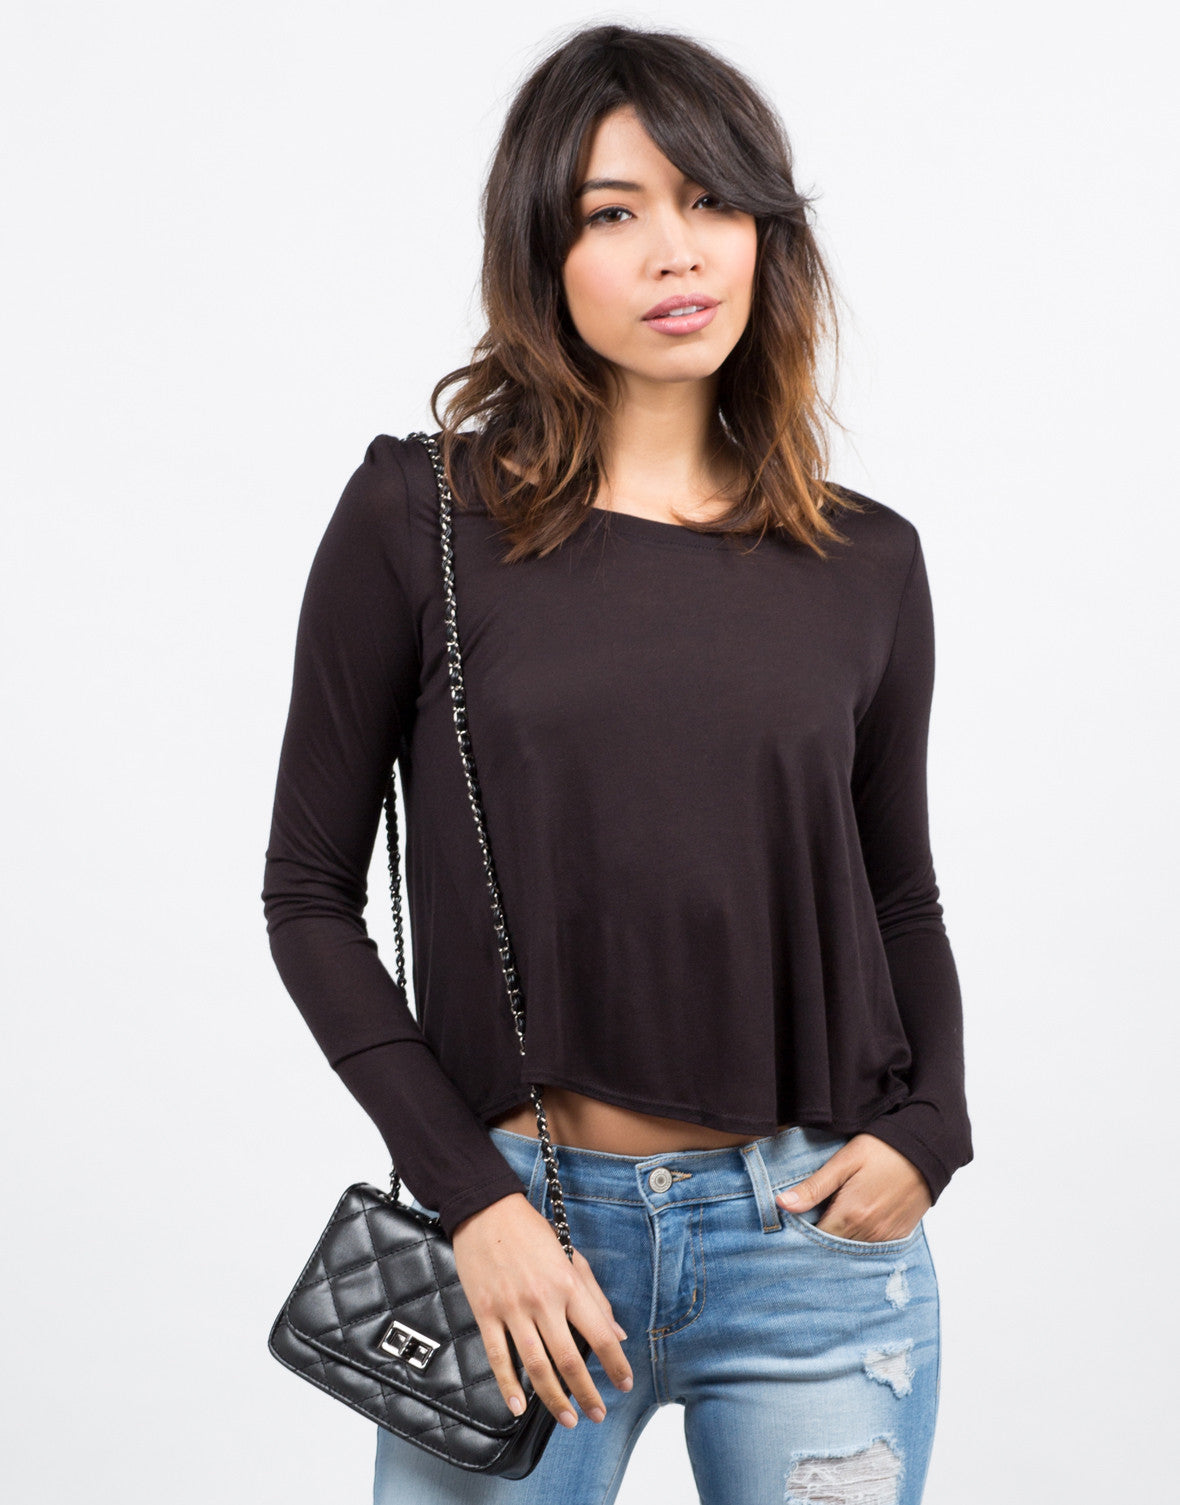 Front View of Simple Semi Sheer Lightweight Long Sleeve Top